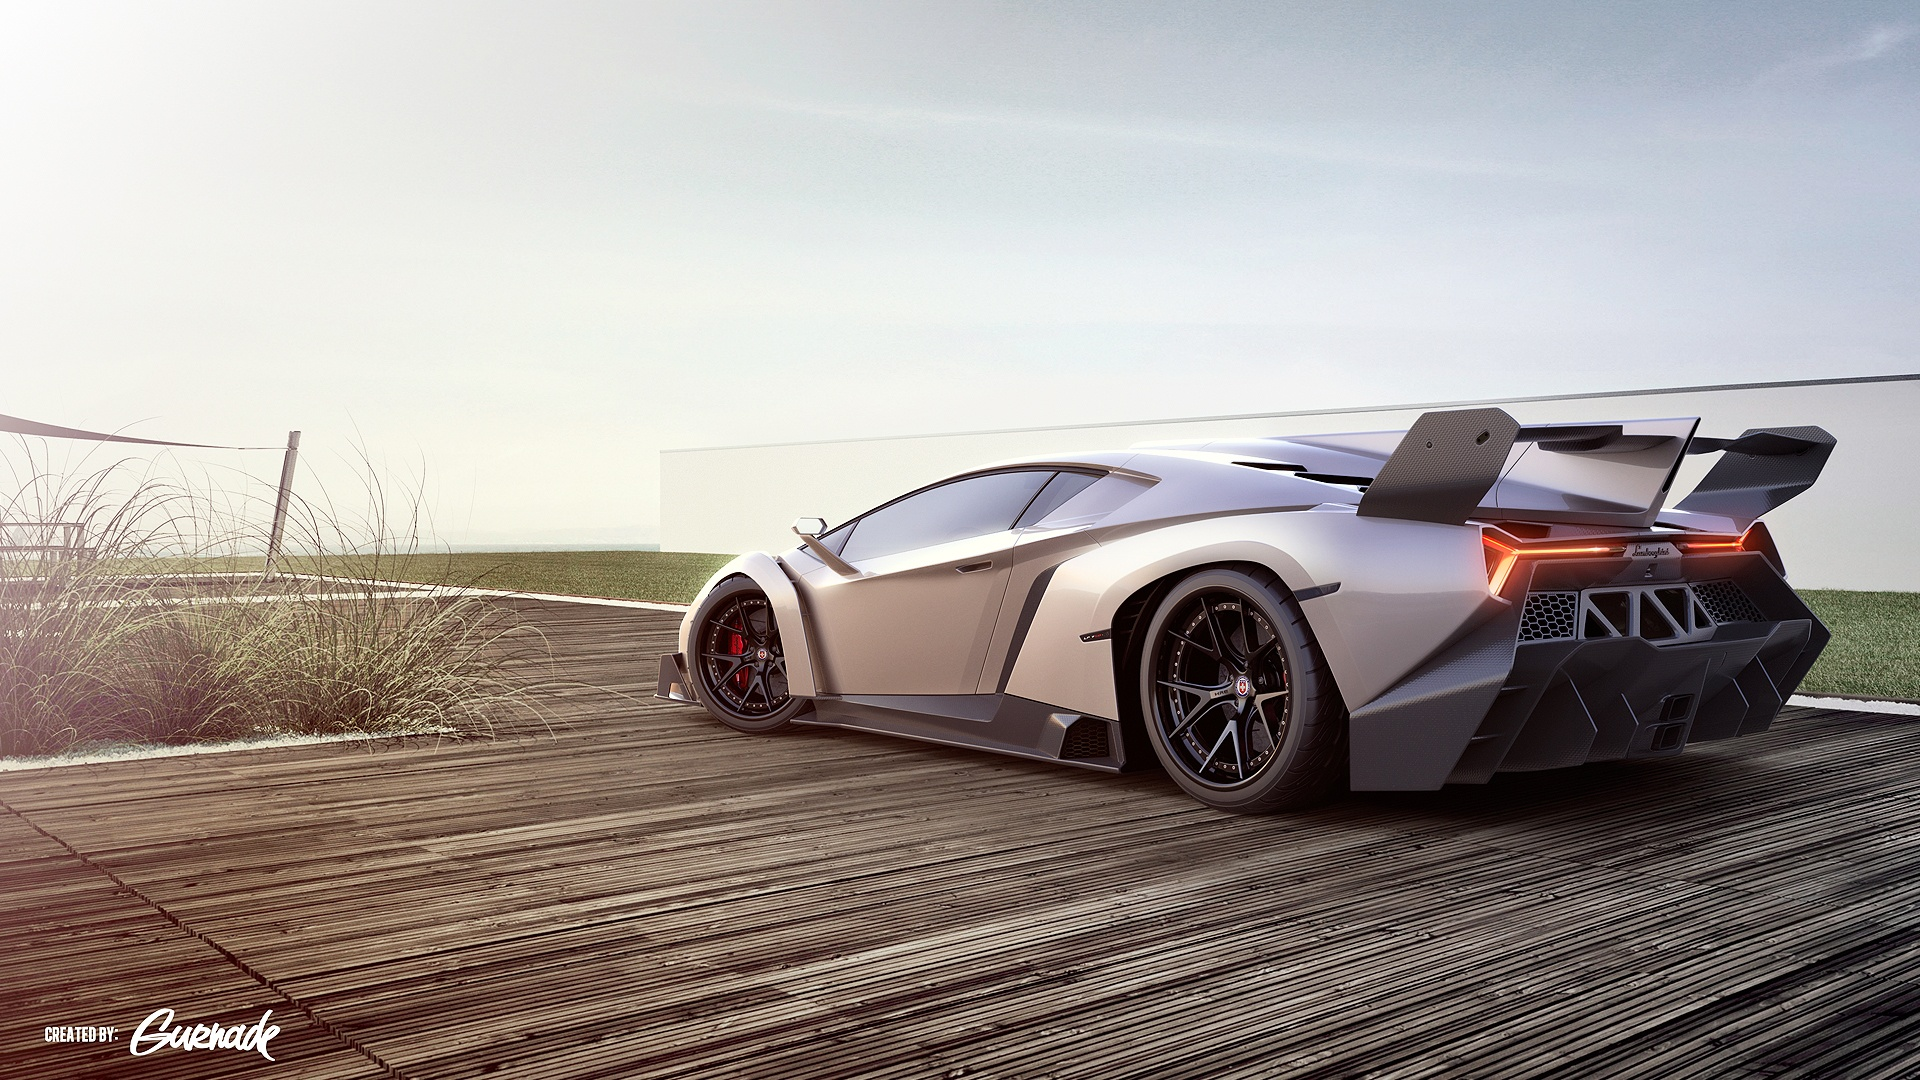 Lamborghini Veneno Sports Car Wallpapers HD Wallpapers 1920x1080